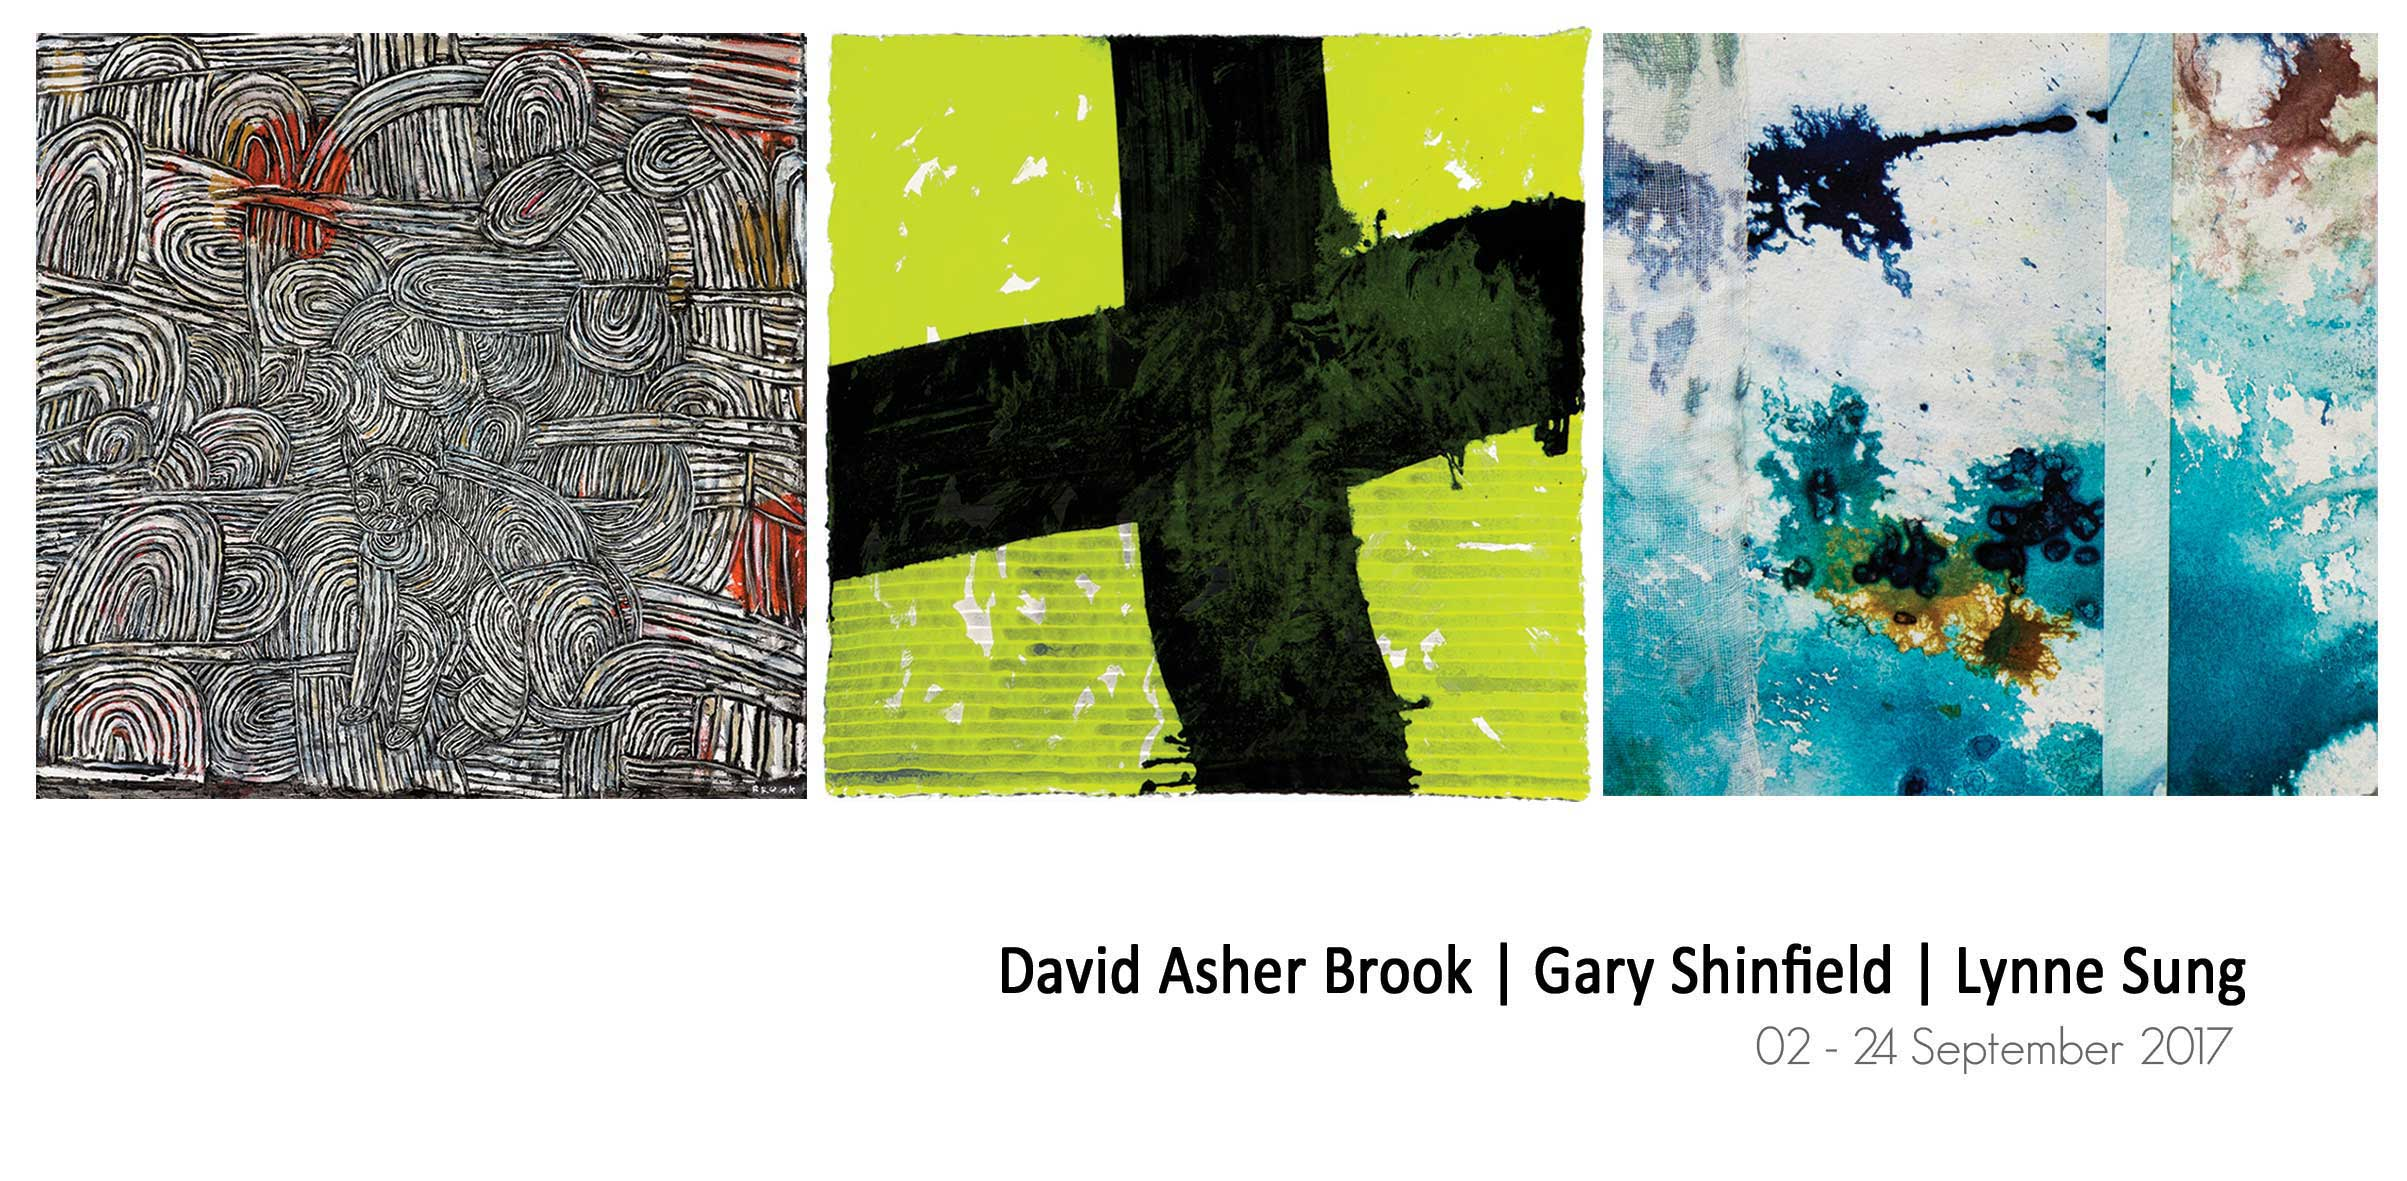 View Exhibition at Artsite Gallery, Sydney: 02 - 24 September 2017 - David Asher Brook | Gary Shinfield | Lynne Sung